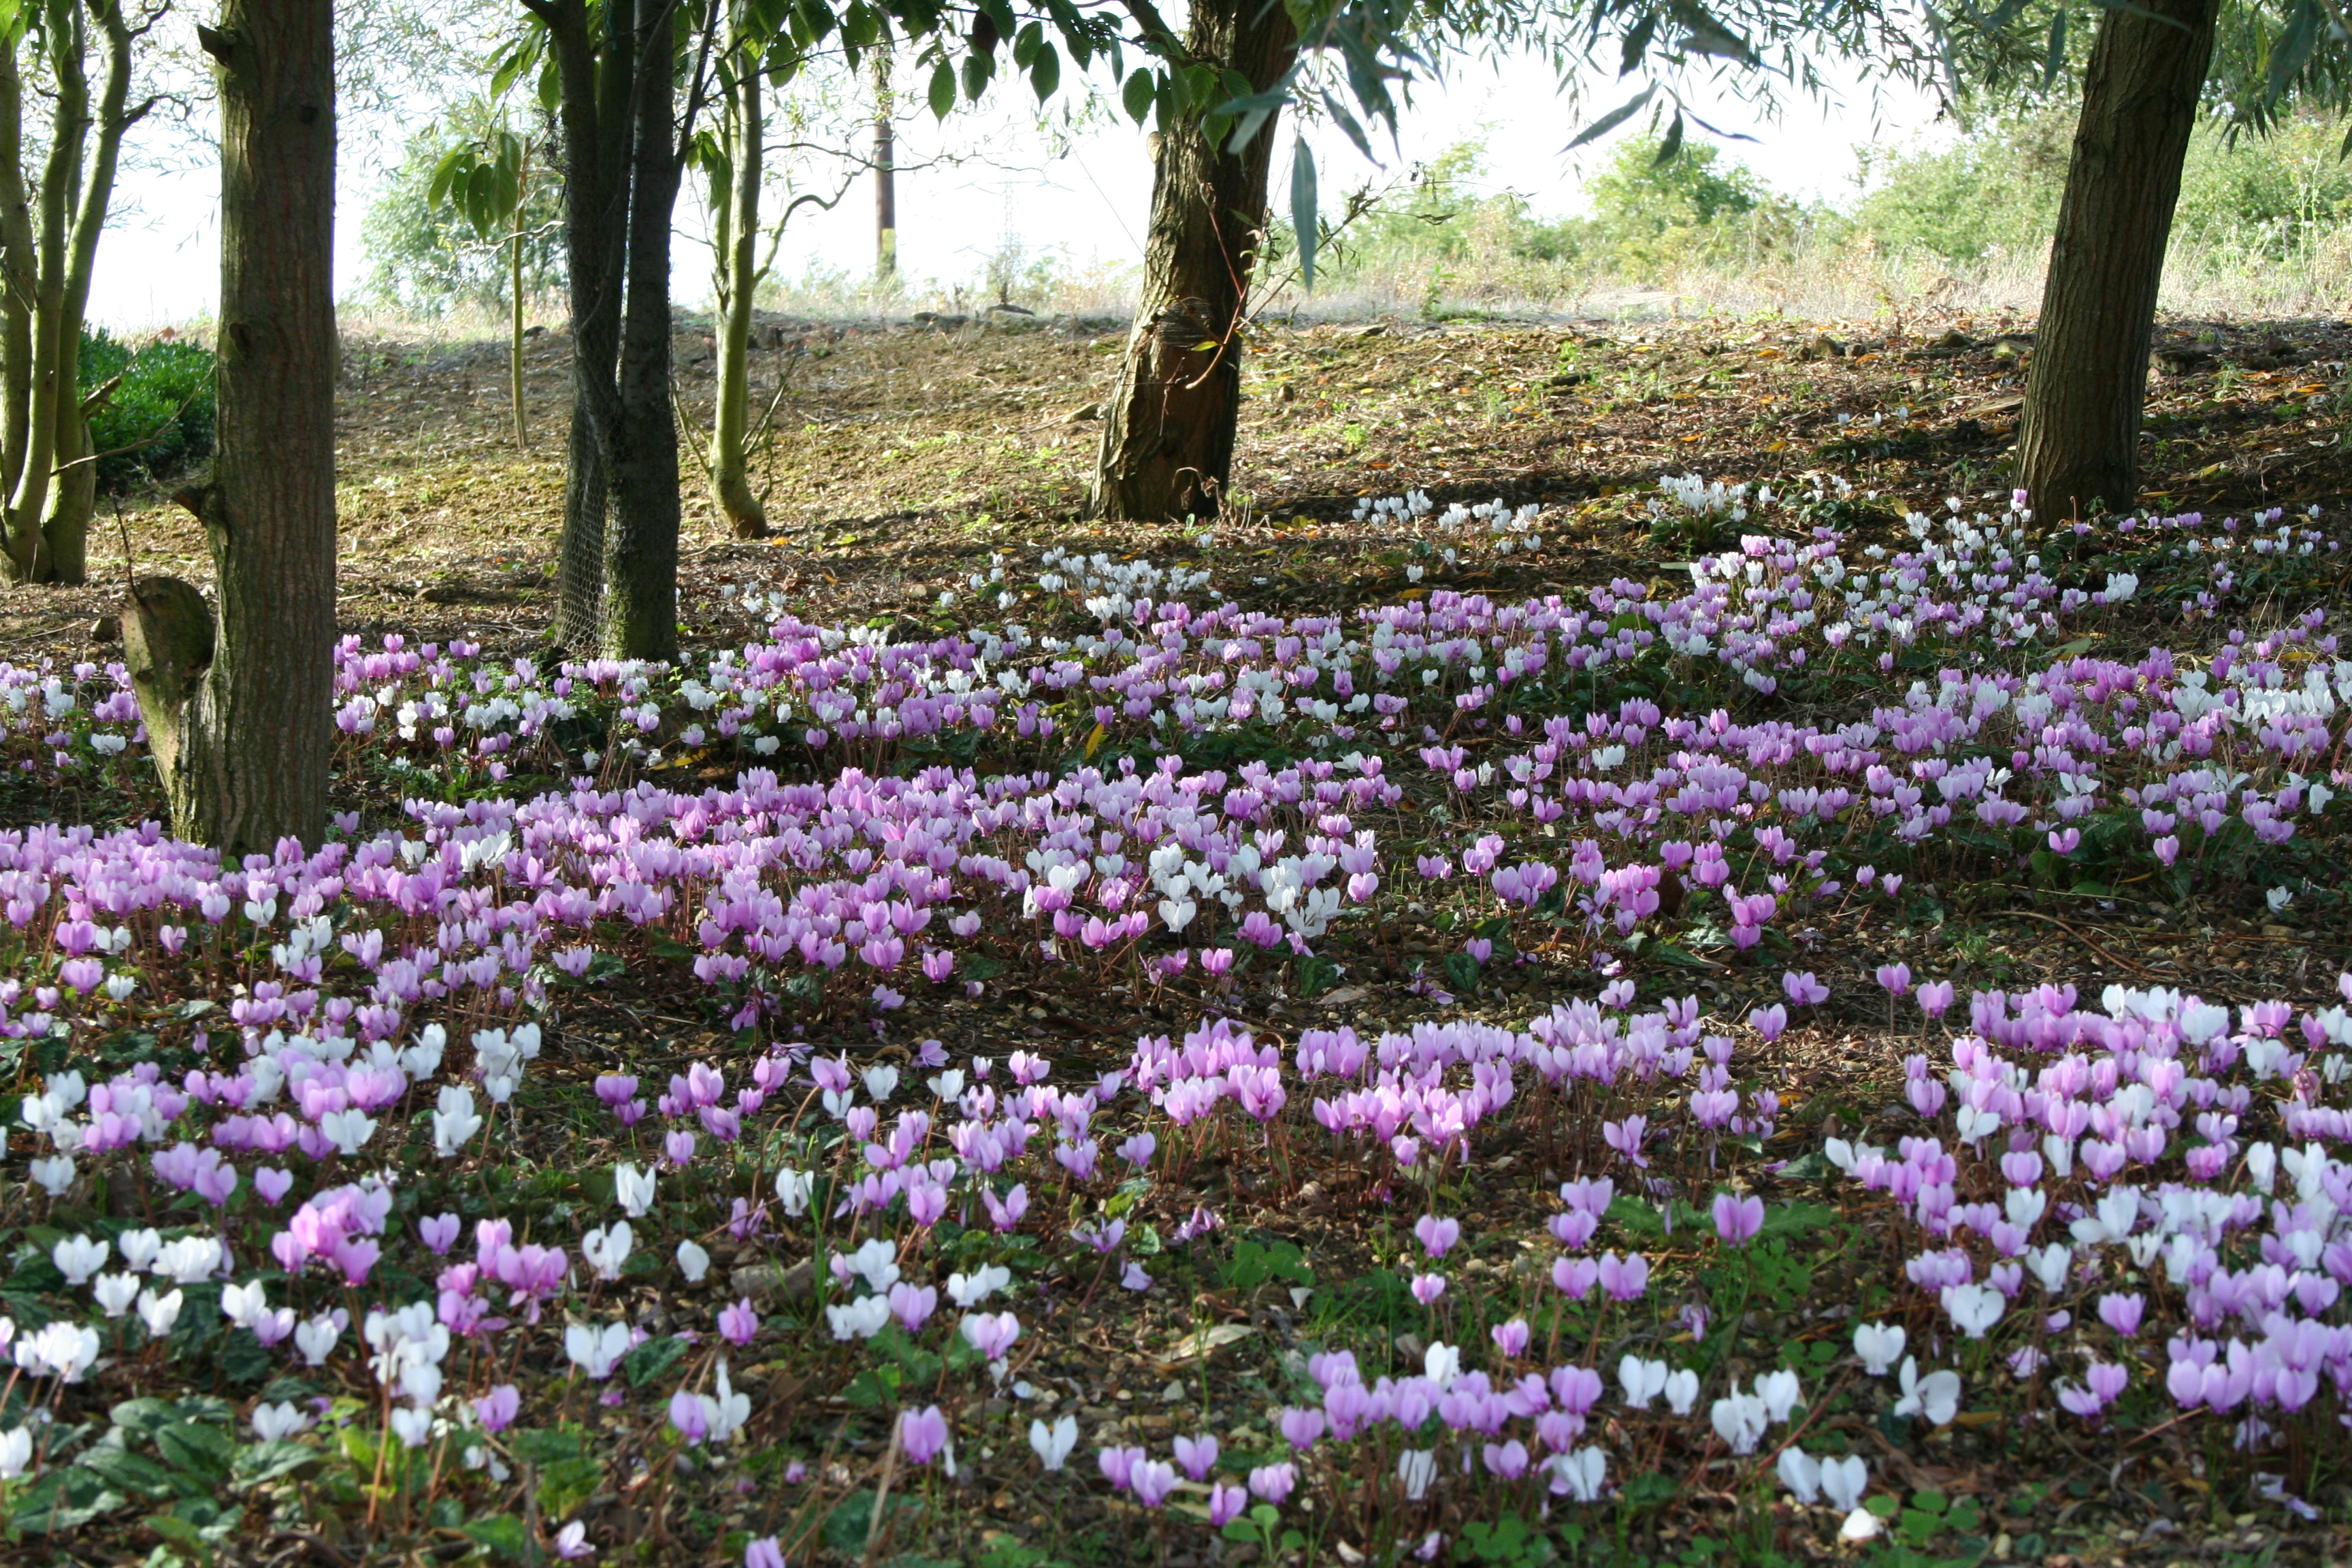 A 'drift' of Cyclamen Hederifolium here at Willows Nursery in the autumn.